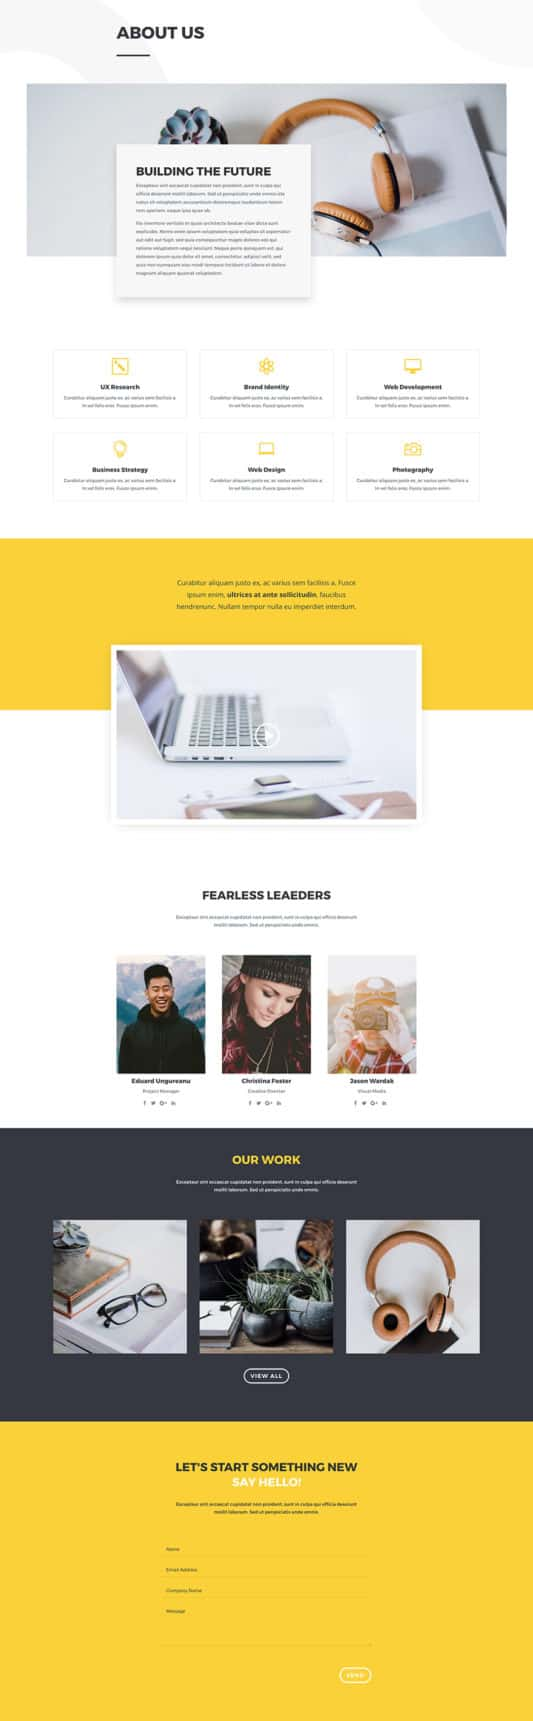 Design Agency Web Design 1